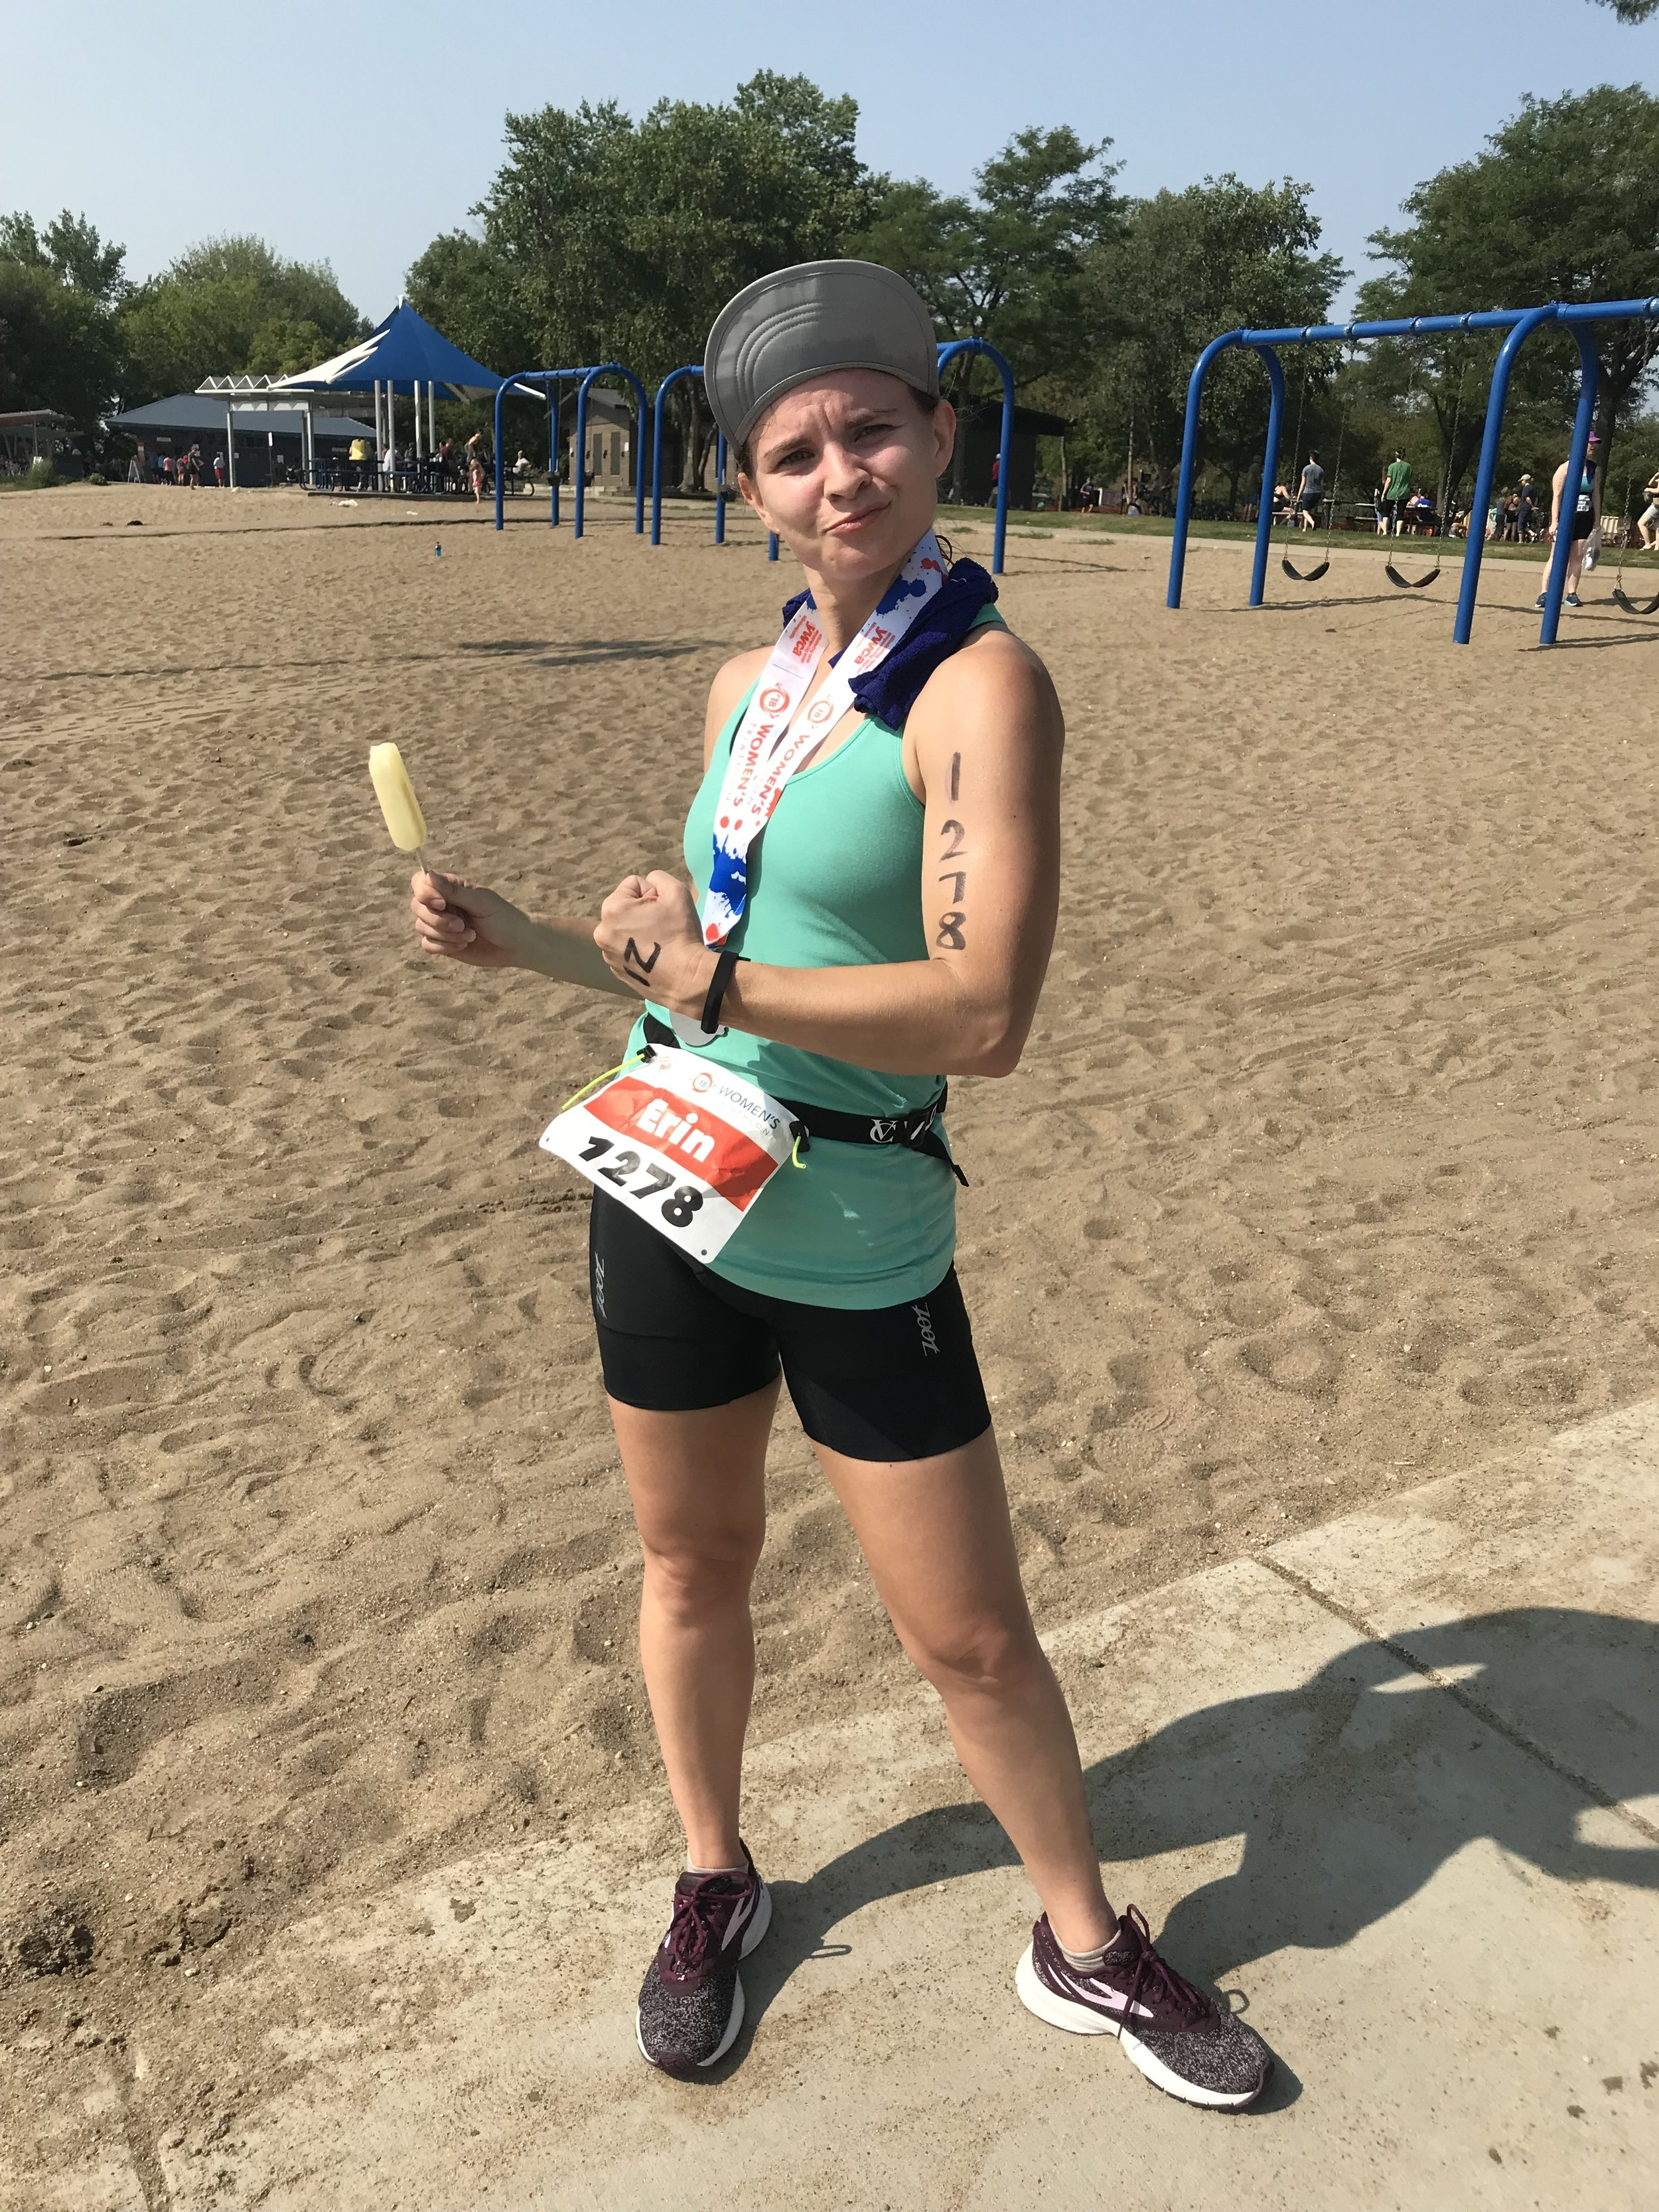 Me with my celebratory popsicle after I crushed my triathlon.